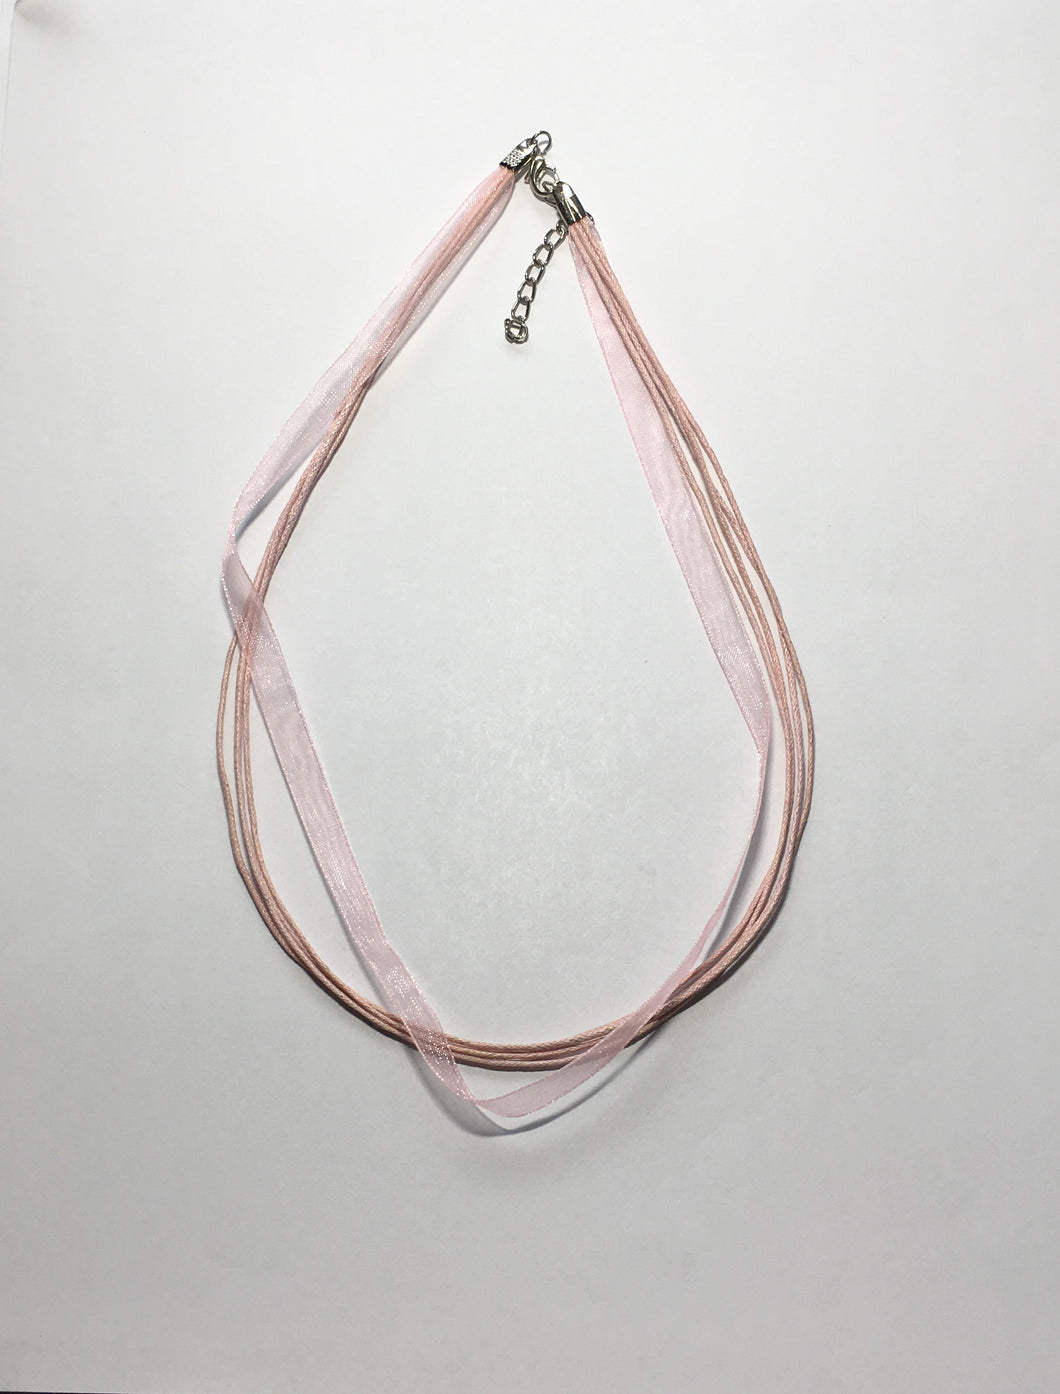 Pink Organza Ribbon and Cord Necklace, 16-Inch